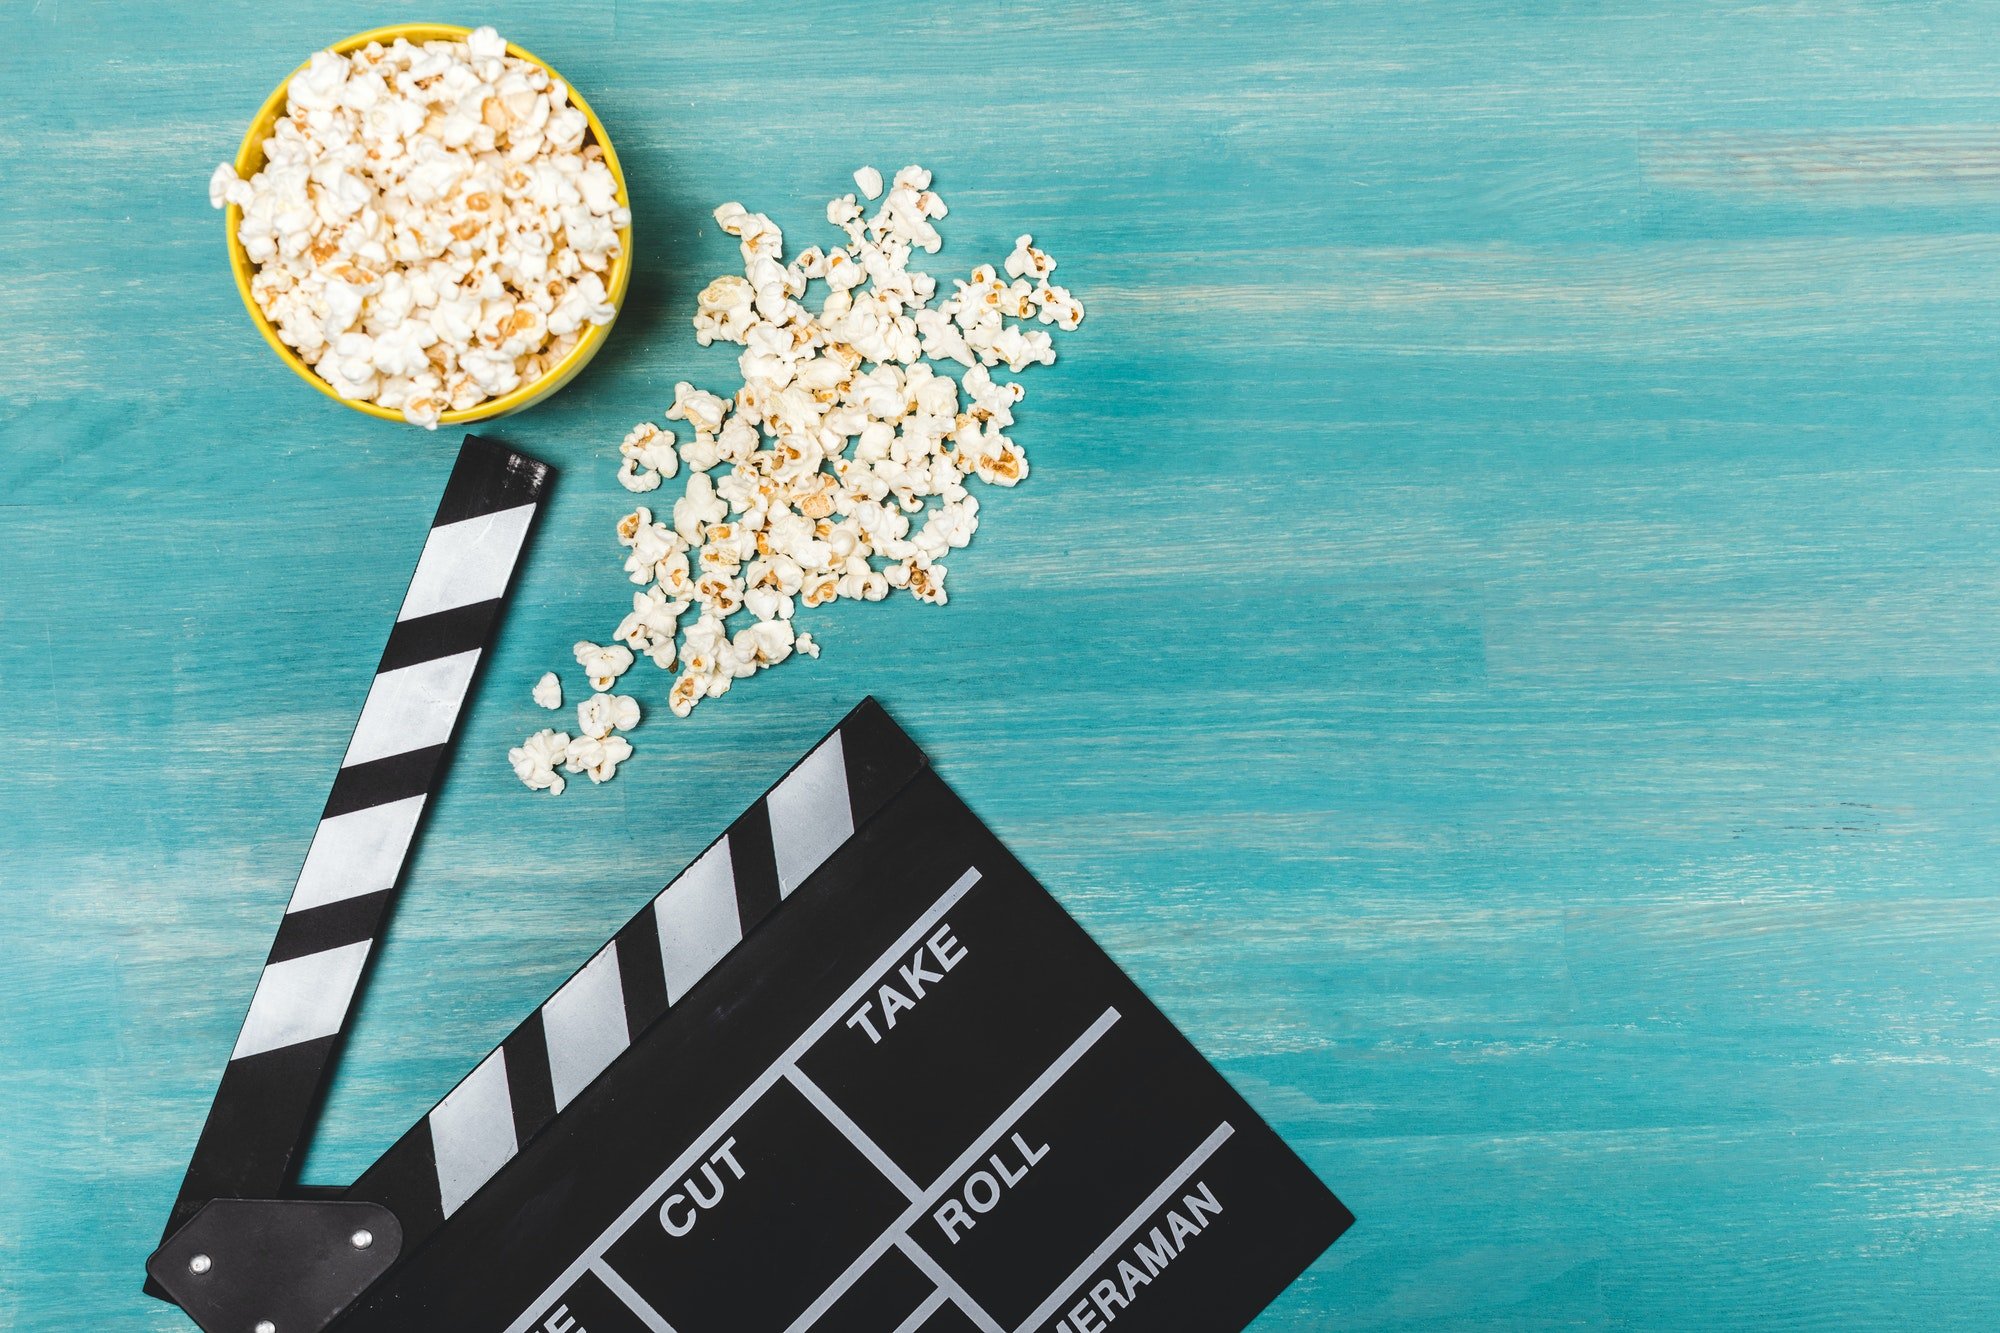 Top View Of Popcorn And Movie Clapper On Wooden Table, Movie Time Concept